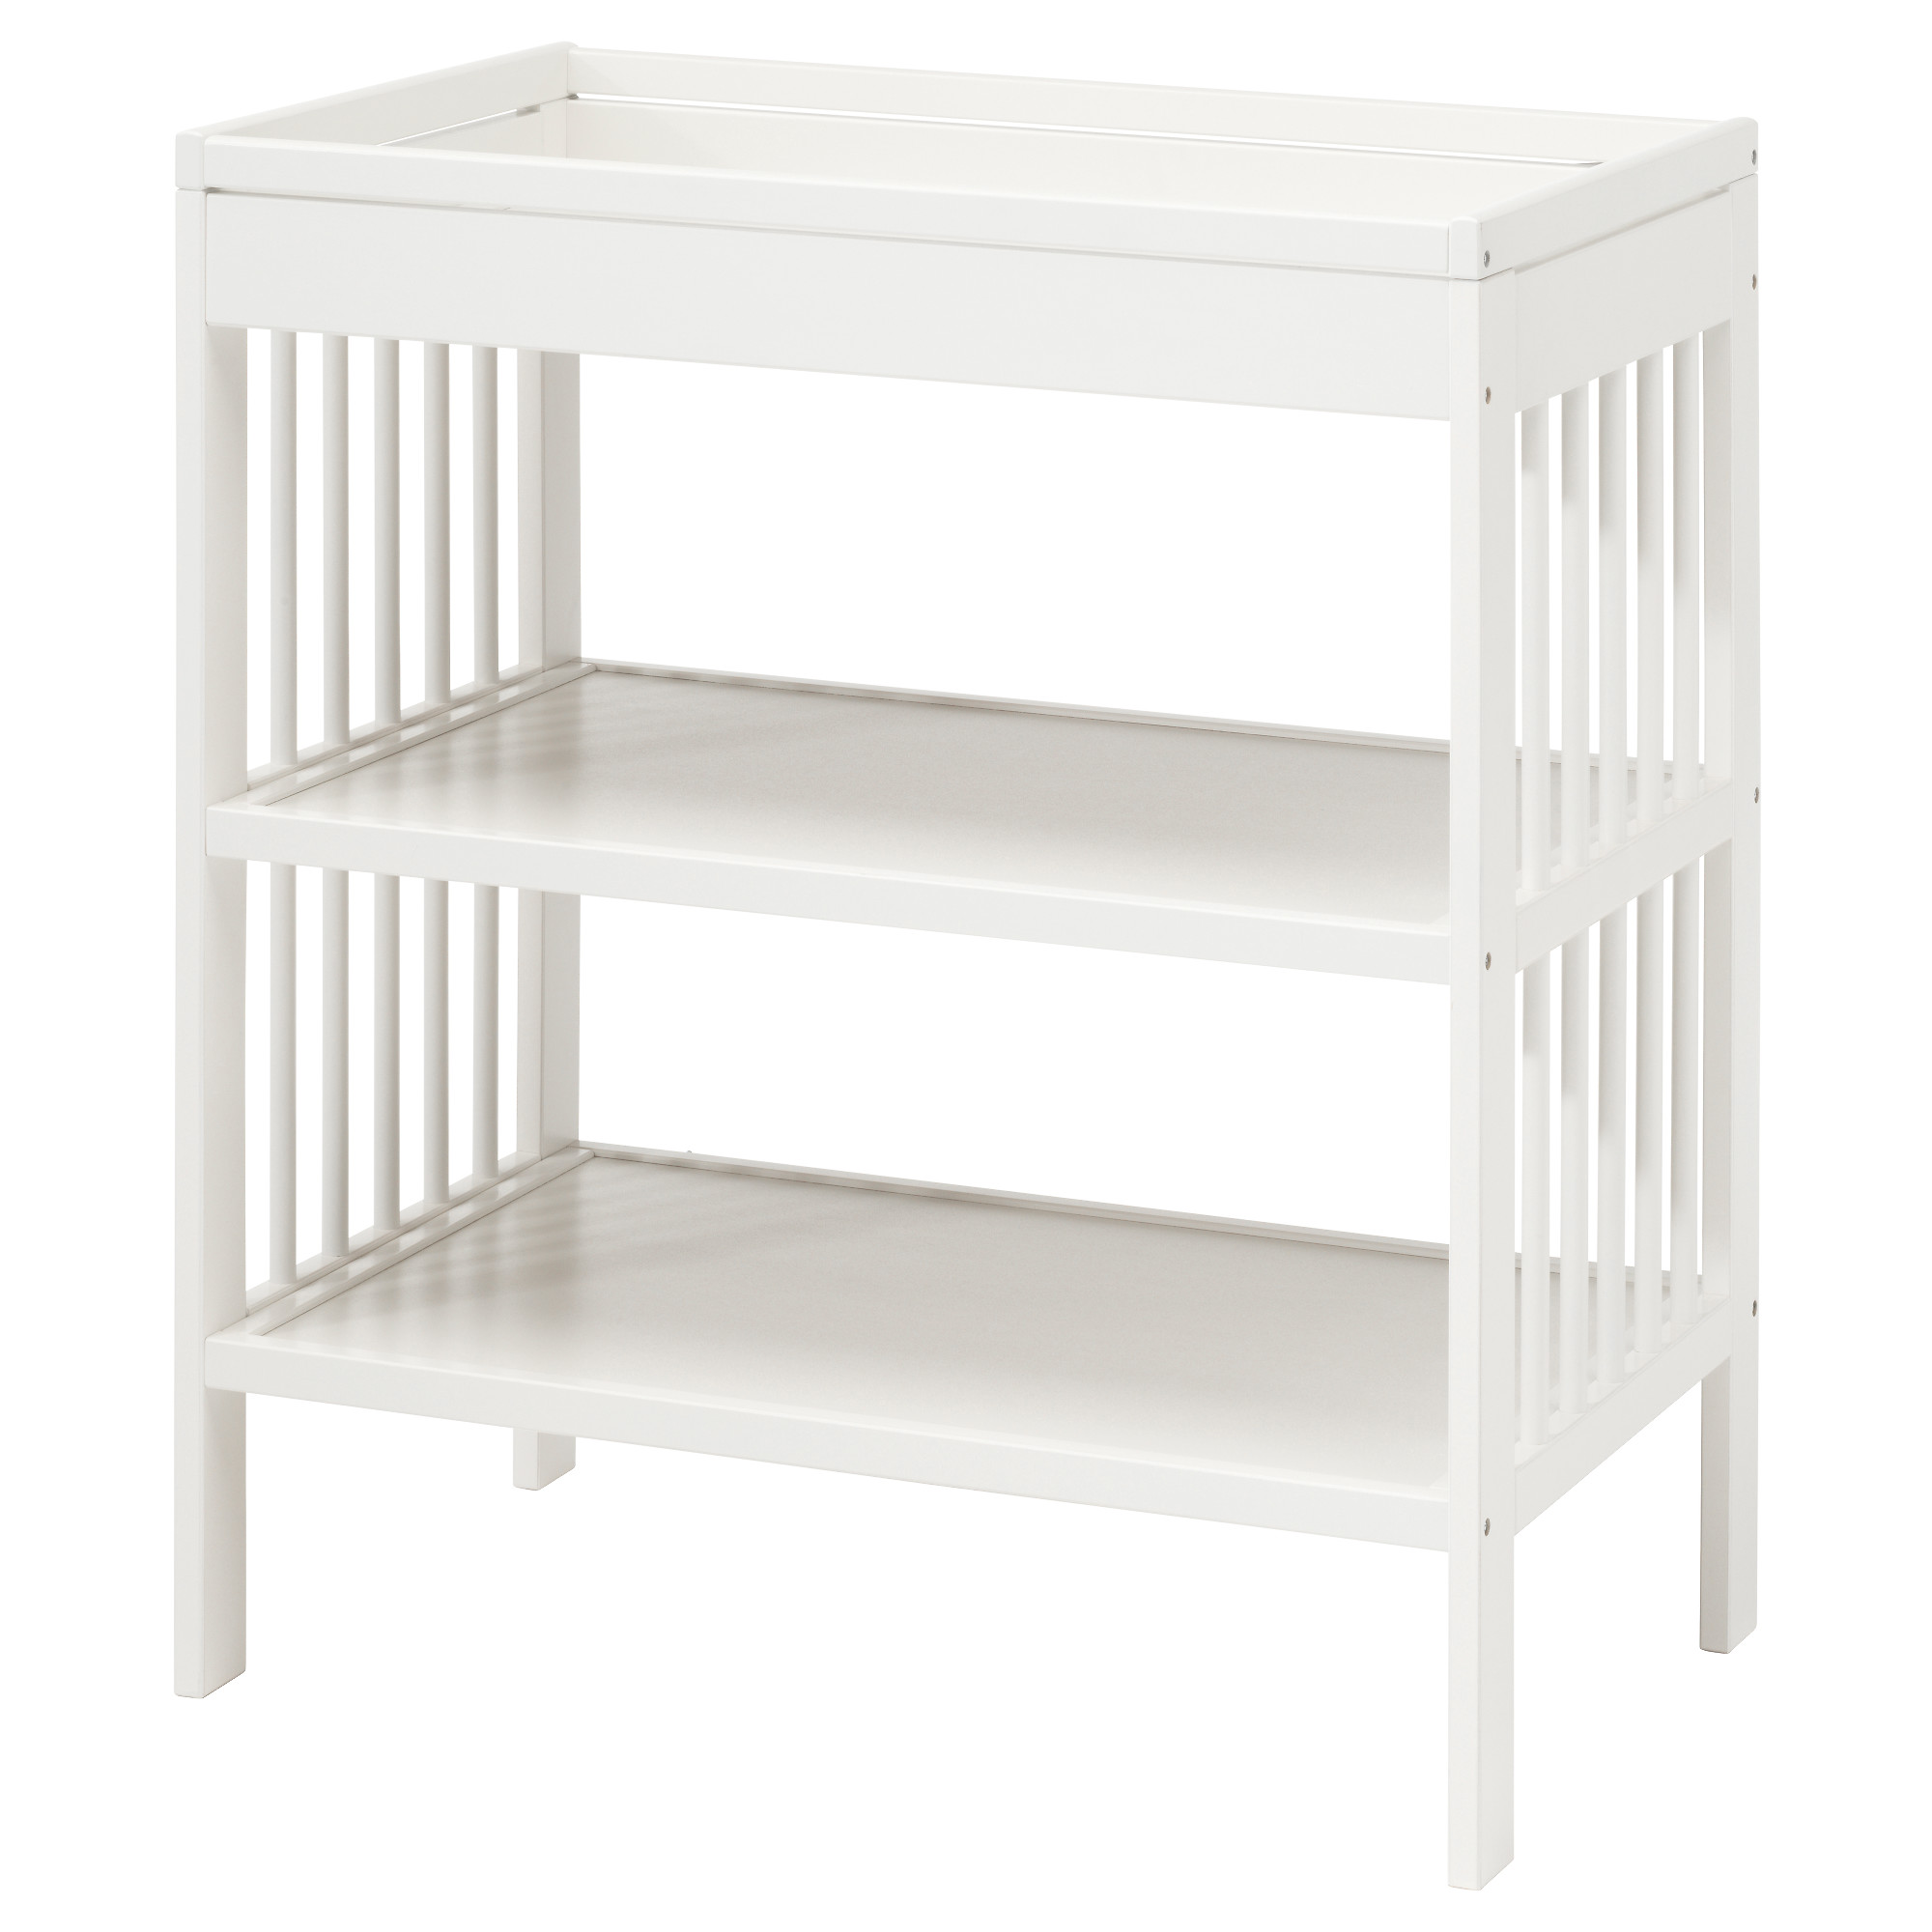 ikea gulliver changing table comfortable height for changing the baby. NXVXPAZ